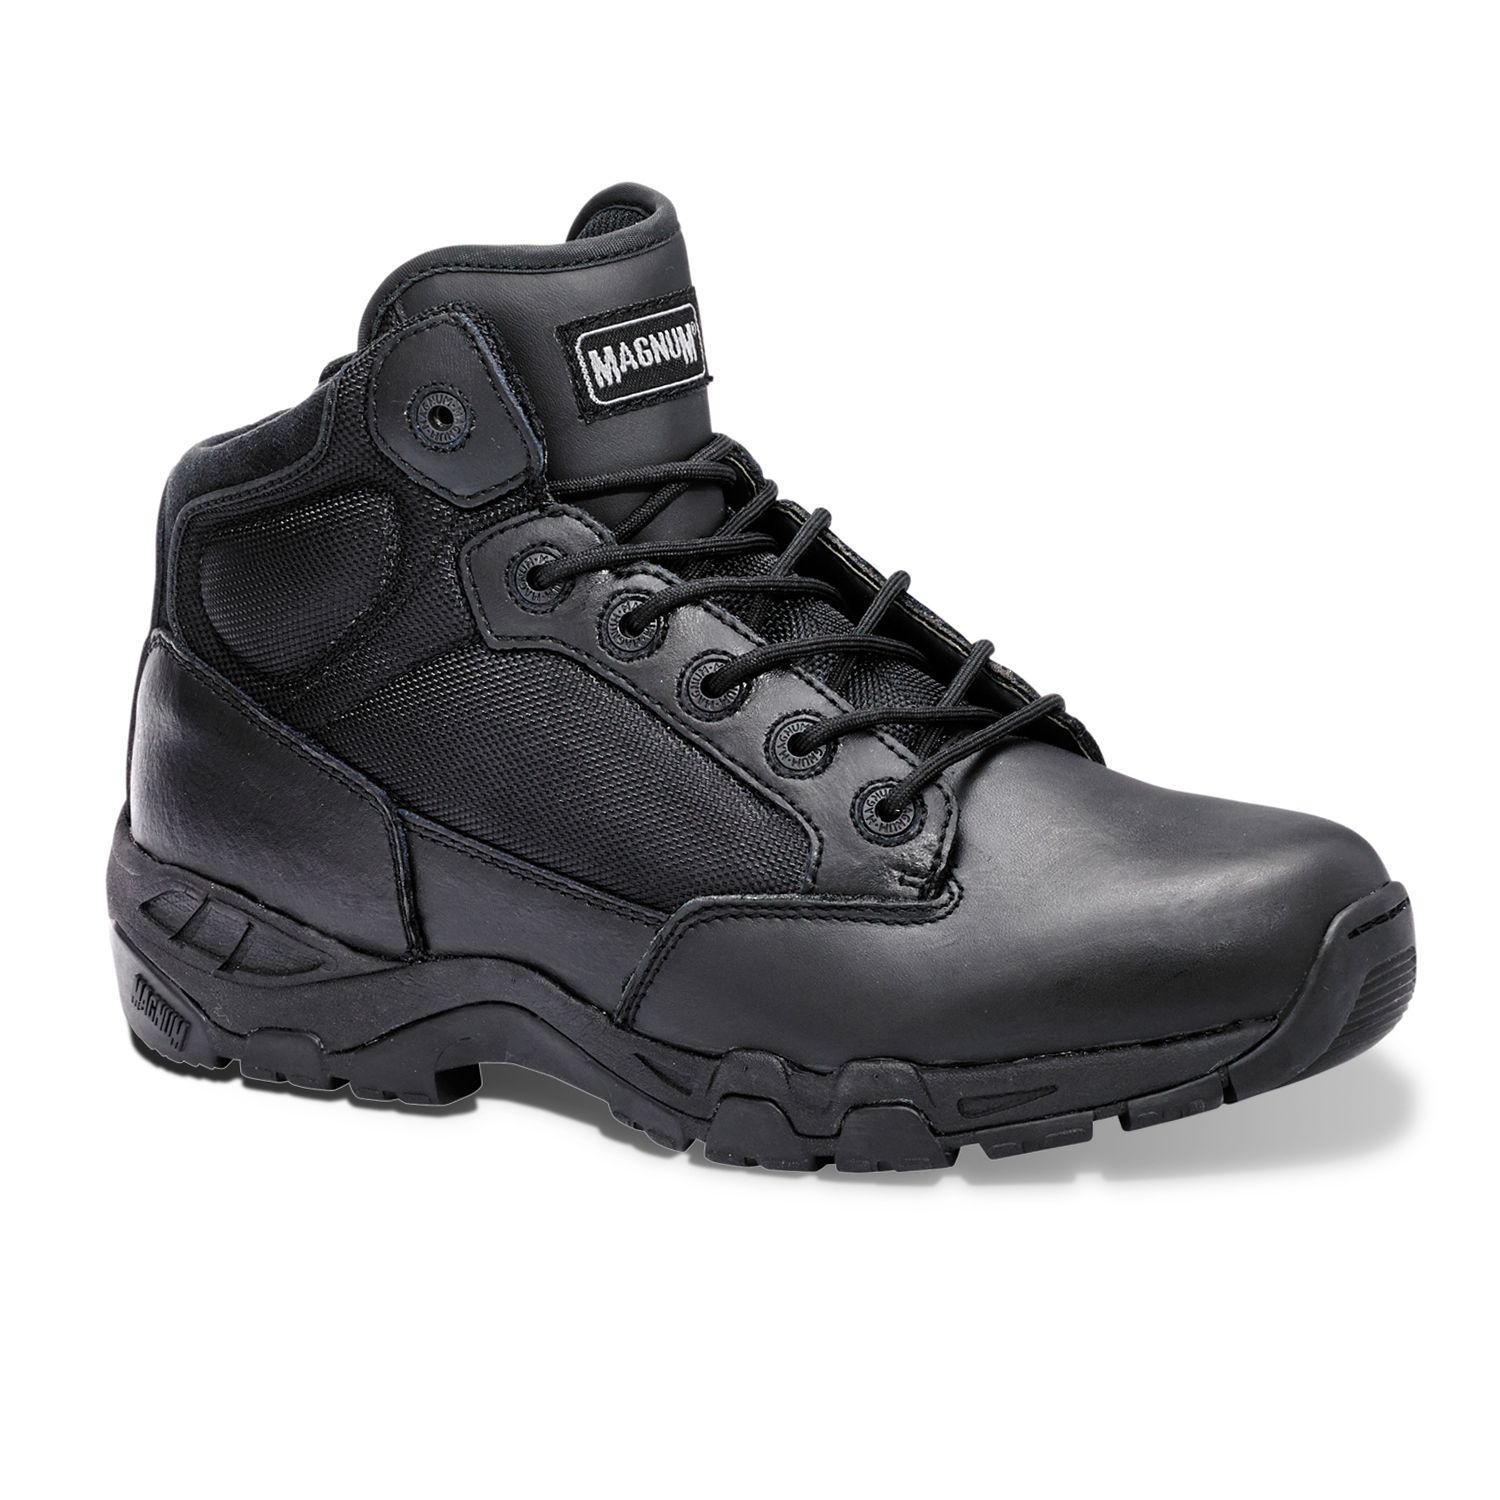 876b9813c372 Work Shoes for Men